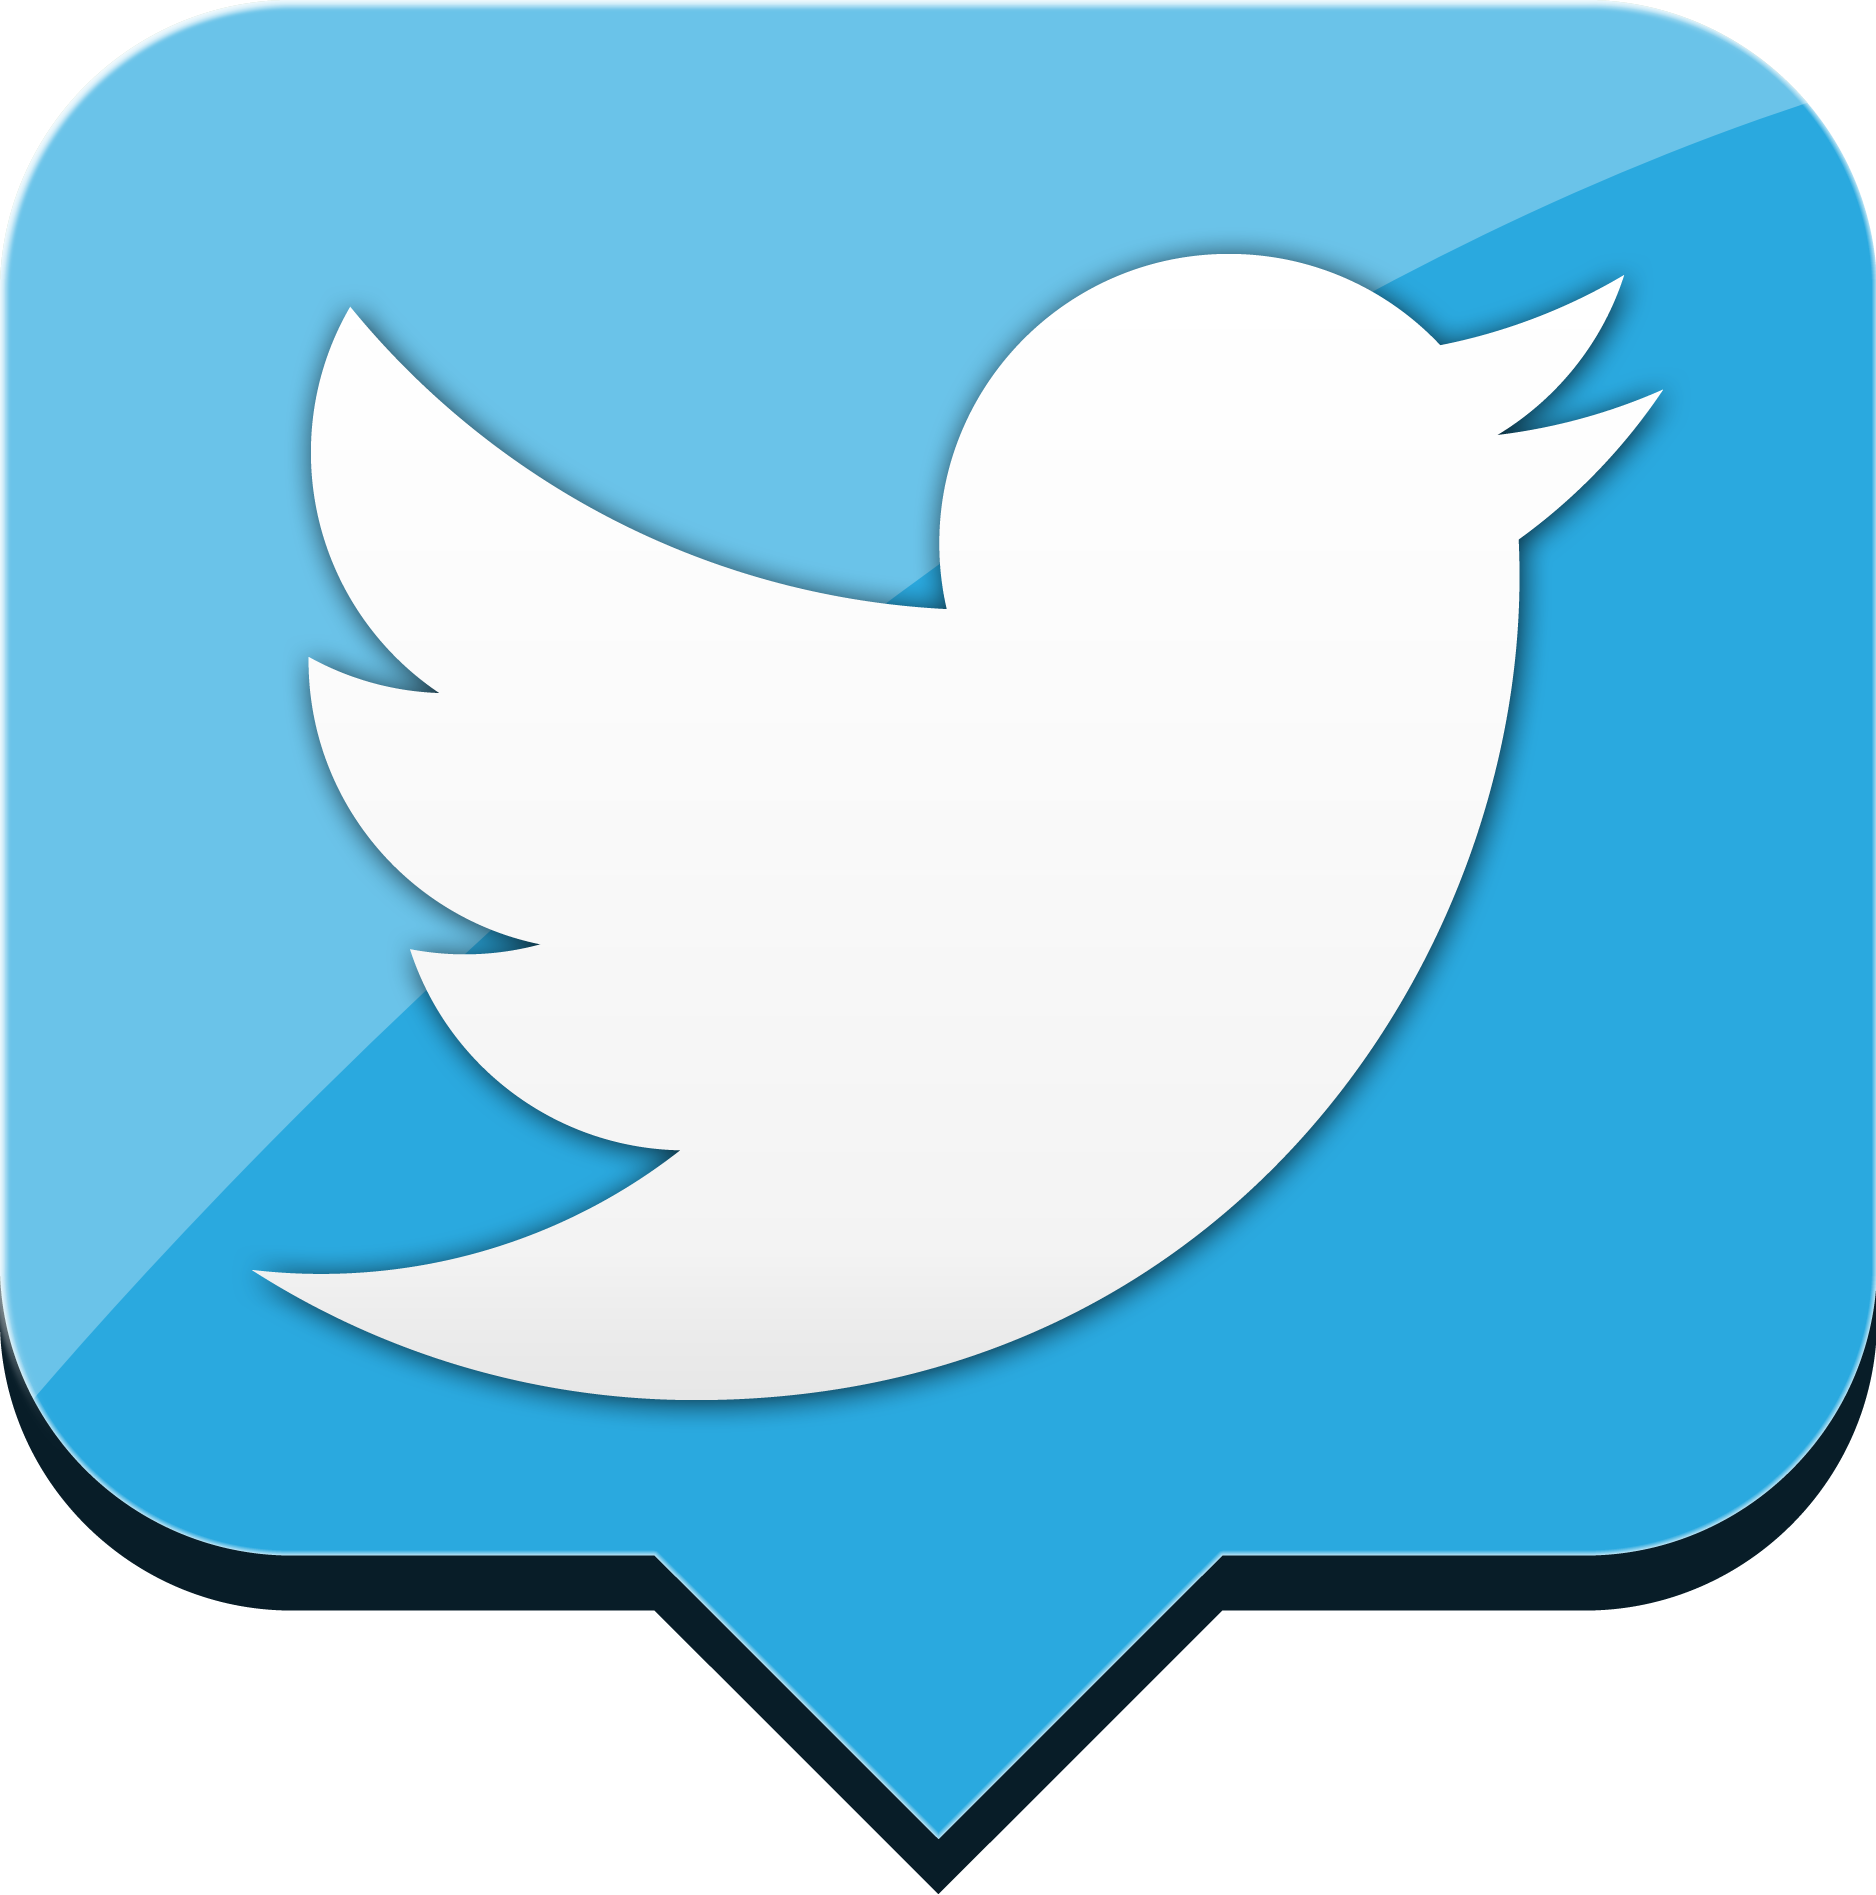 Free Twitter PNG Transparent Images, Download Free Clip Art.